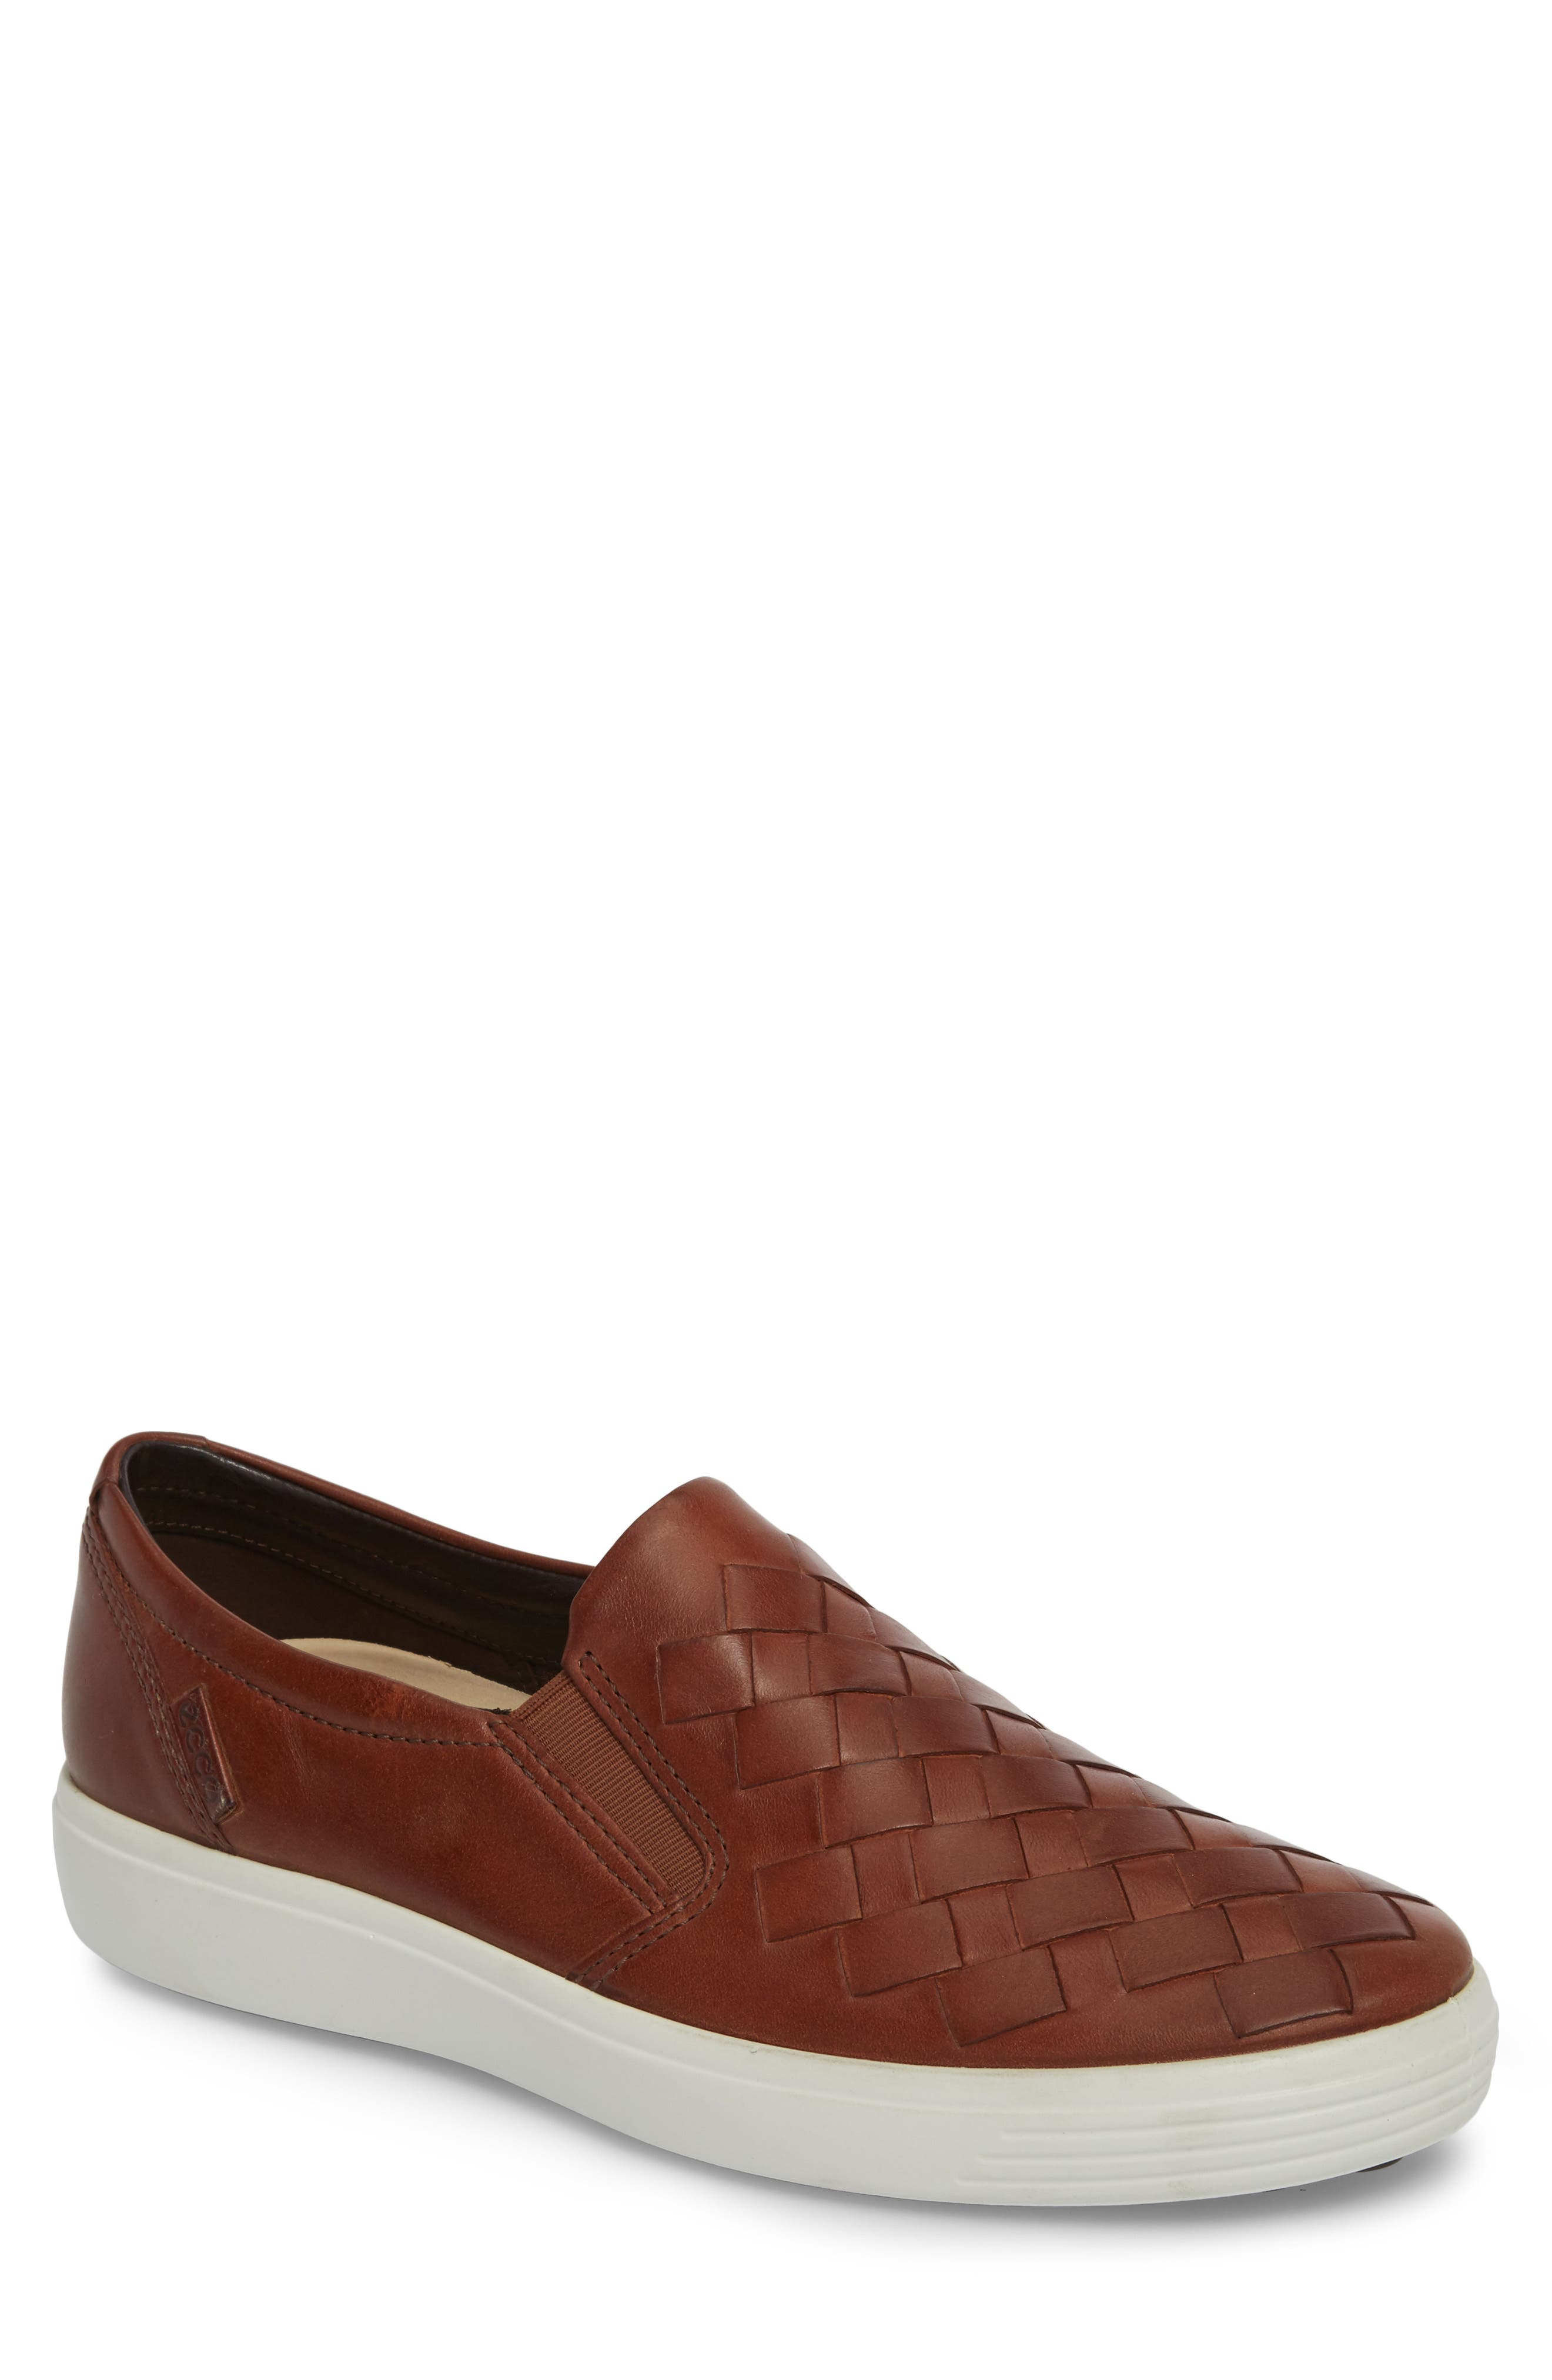 Soft 7 Woven Slip-On Sneaker,                             Main thumbnail 1, color,                             MAHOGANY LEATHER